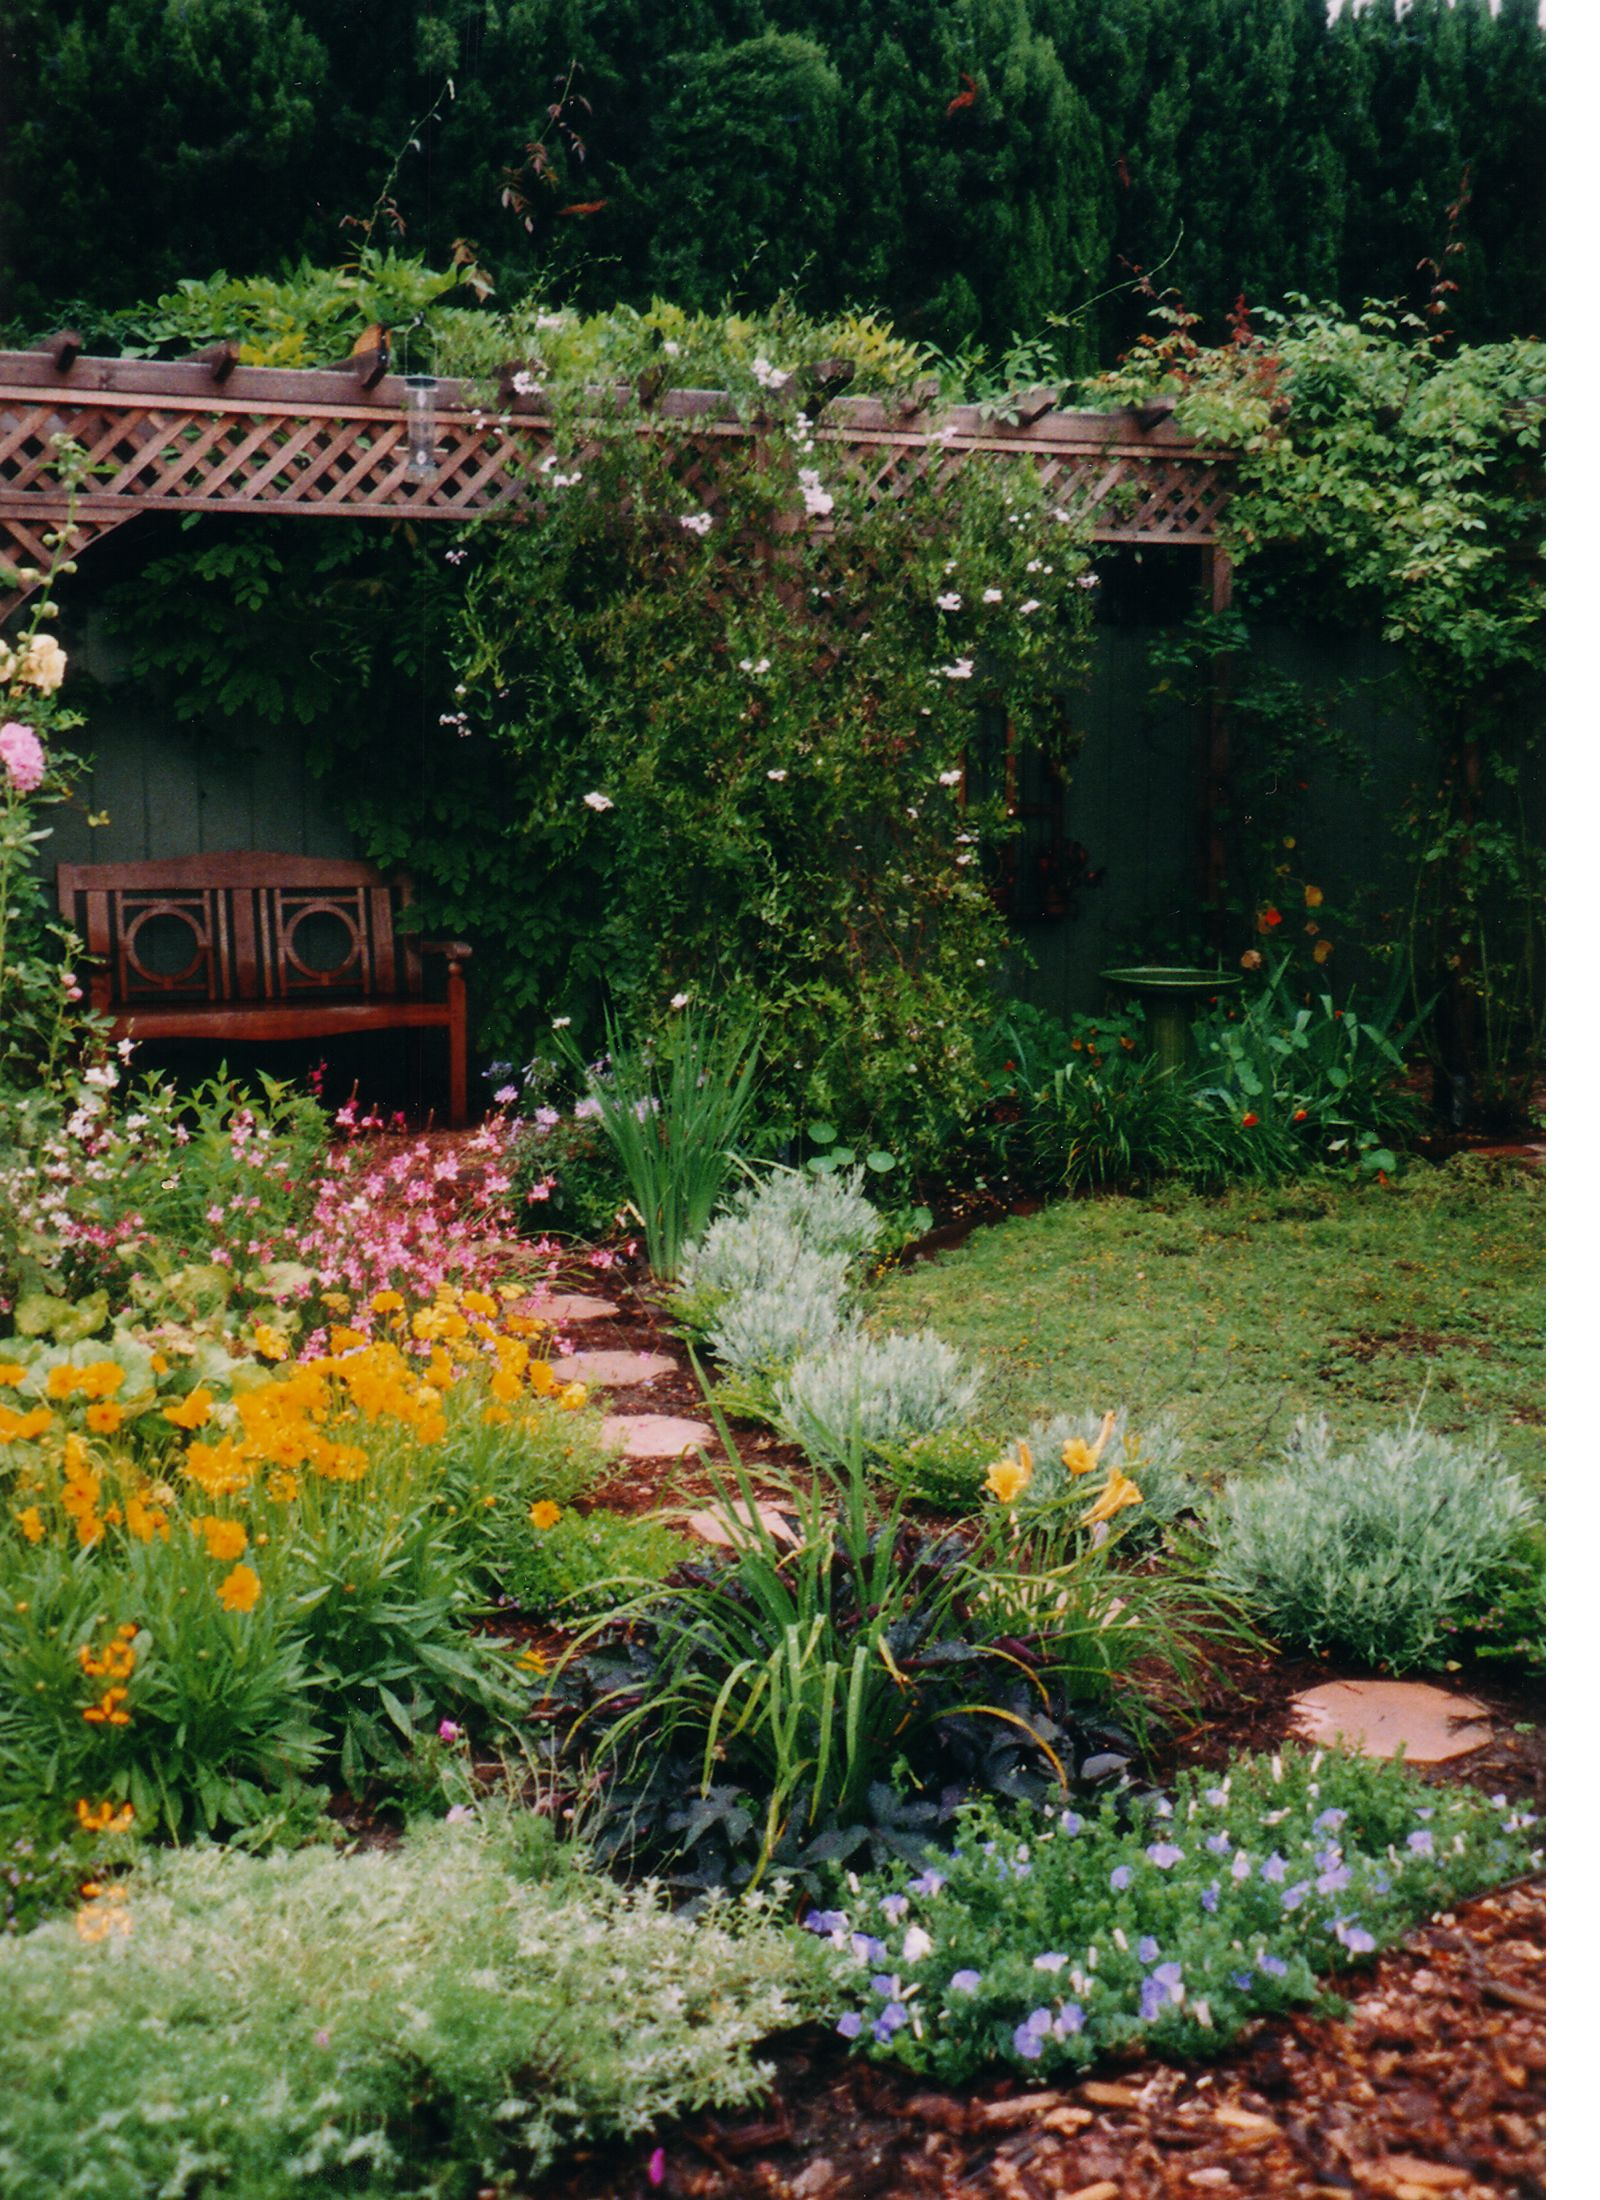 Backyard design ideas backyard vegetable gardens home for Idea paisajismo patio al aire libre